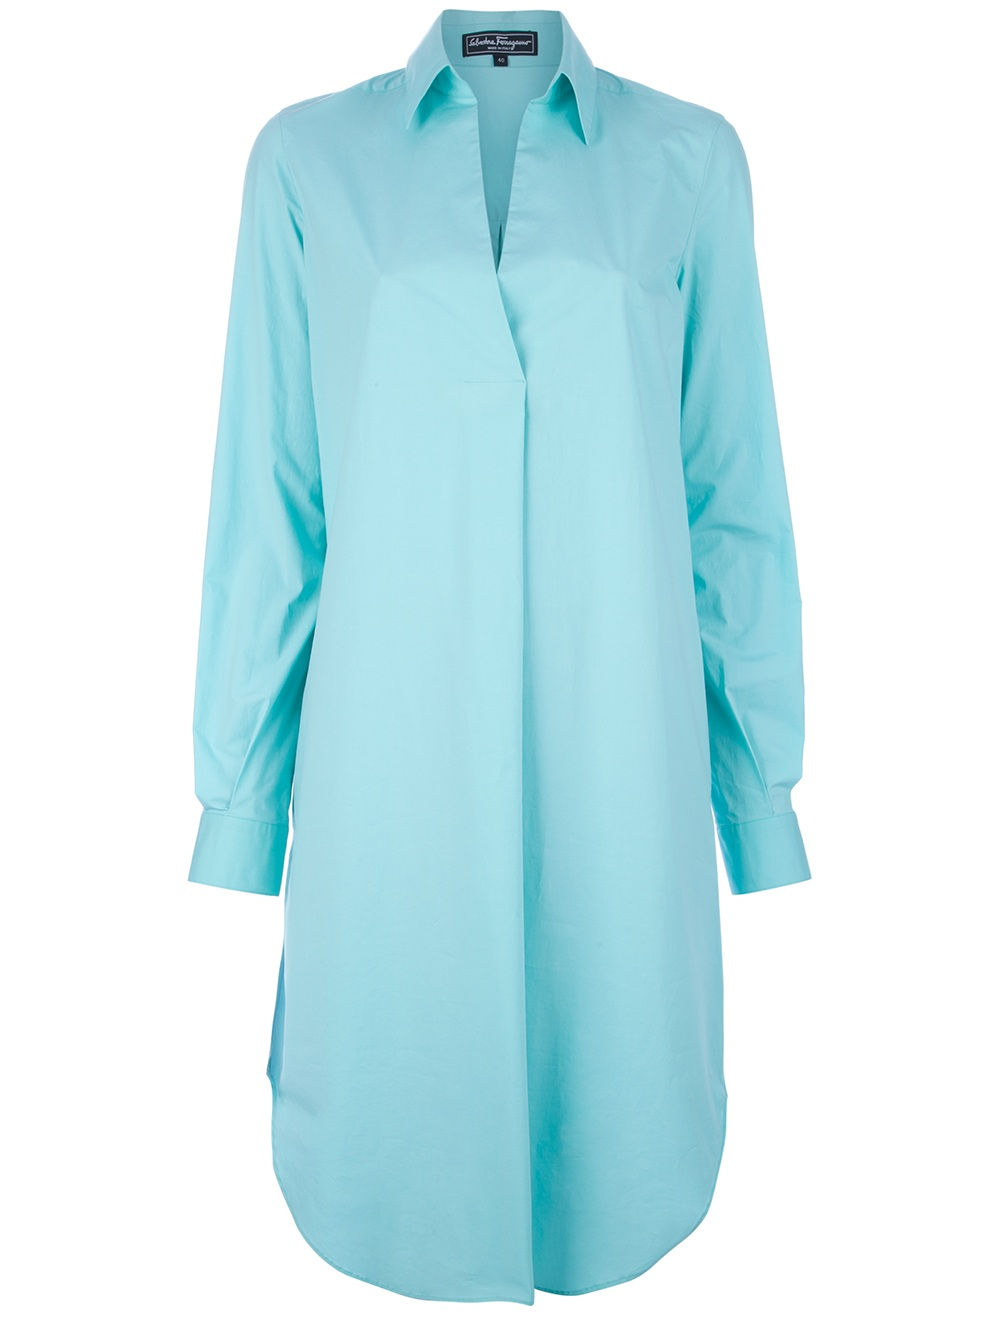 Long Dress Shirts For Women